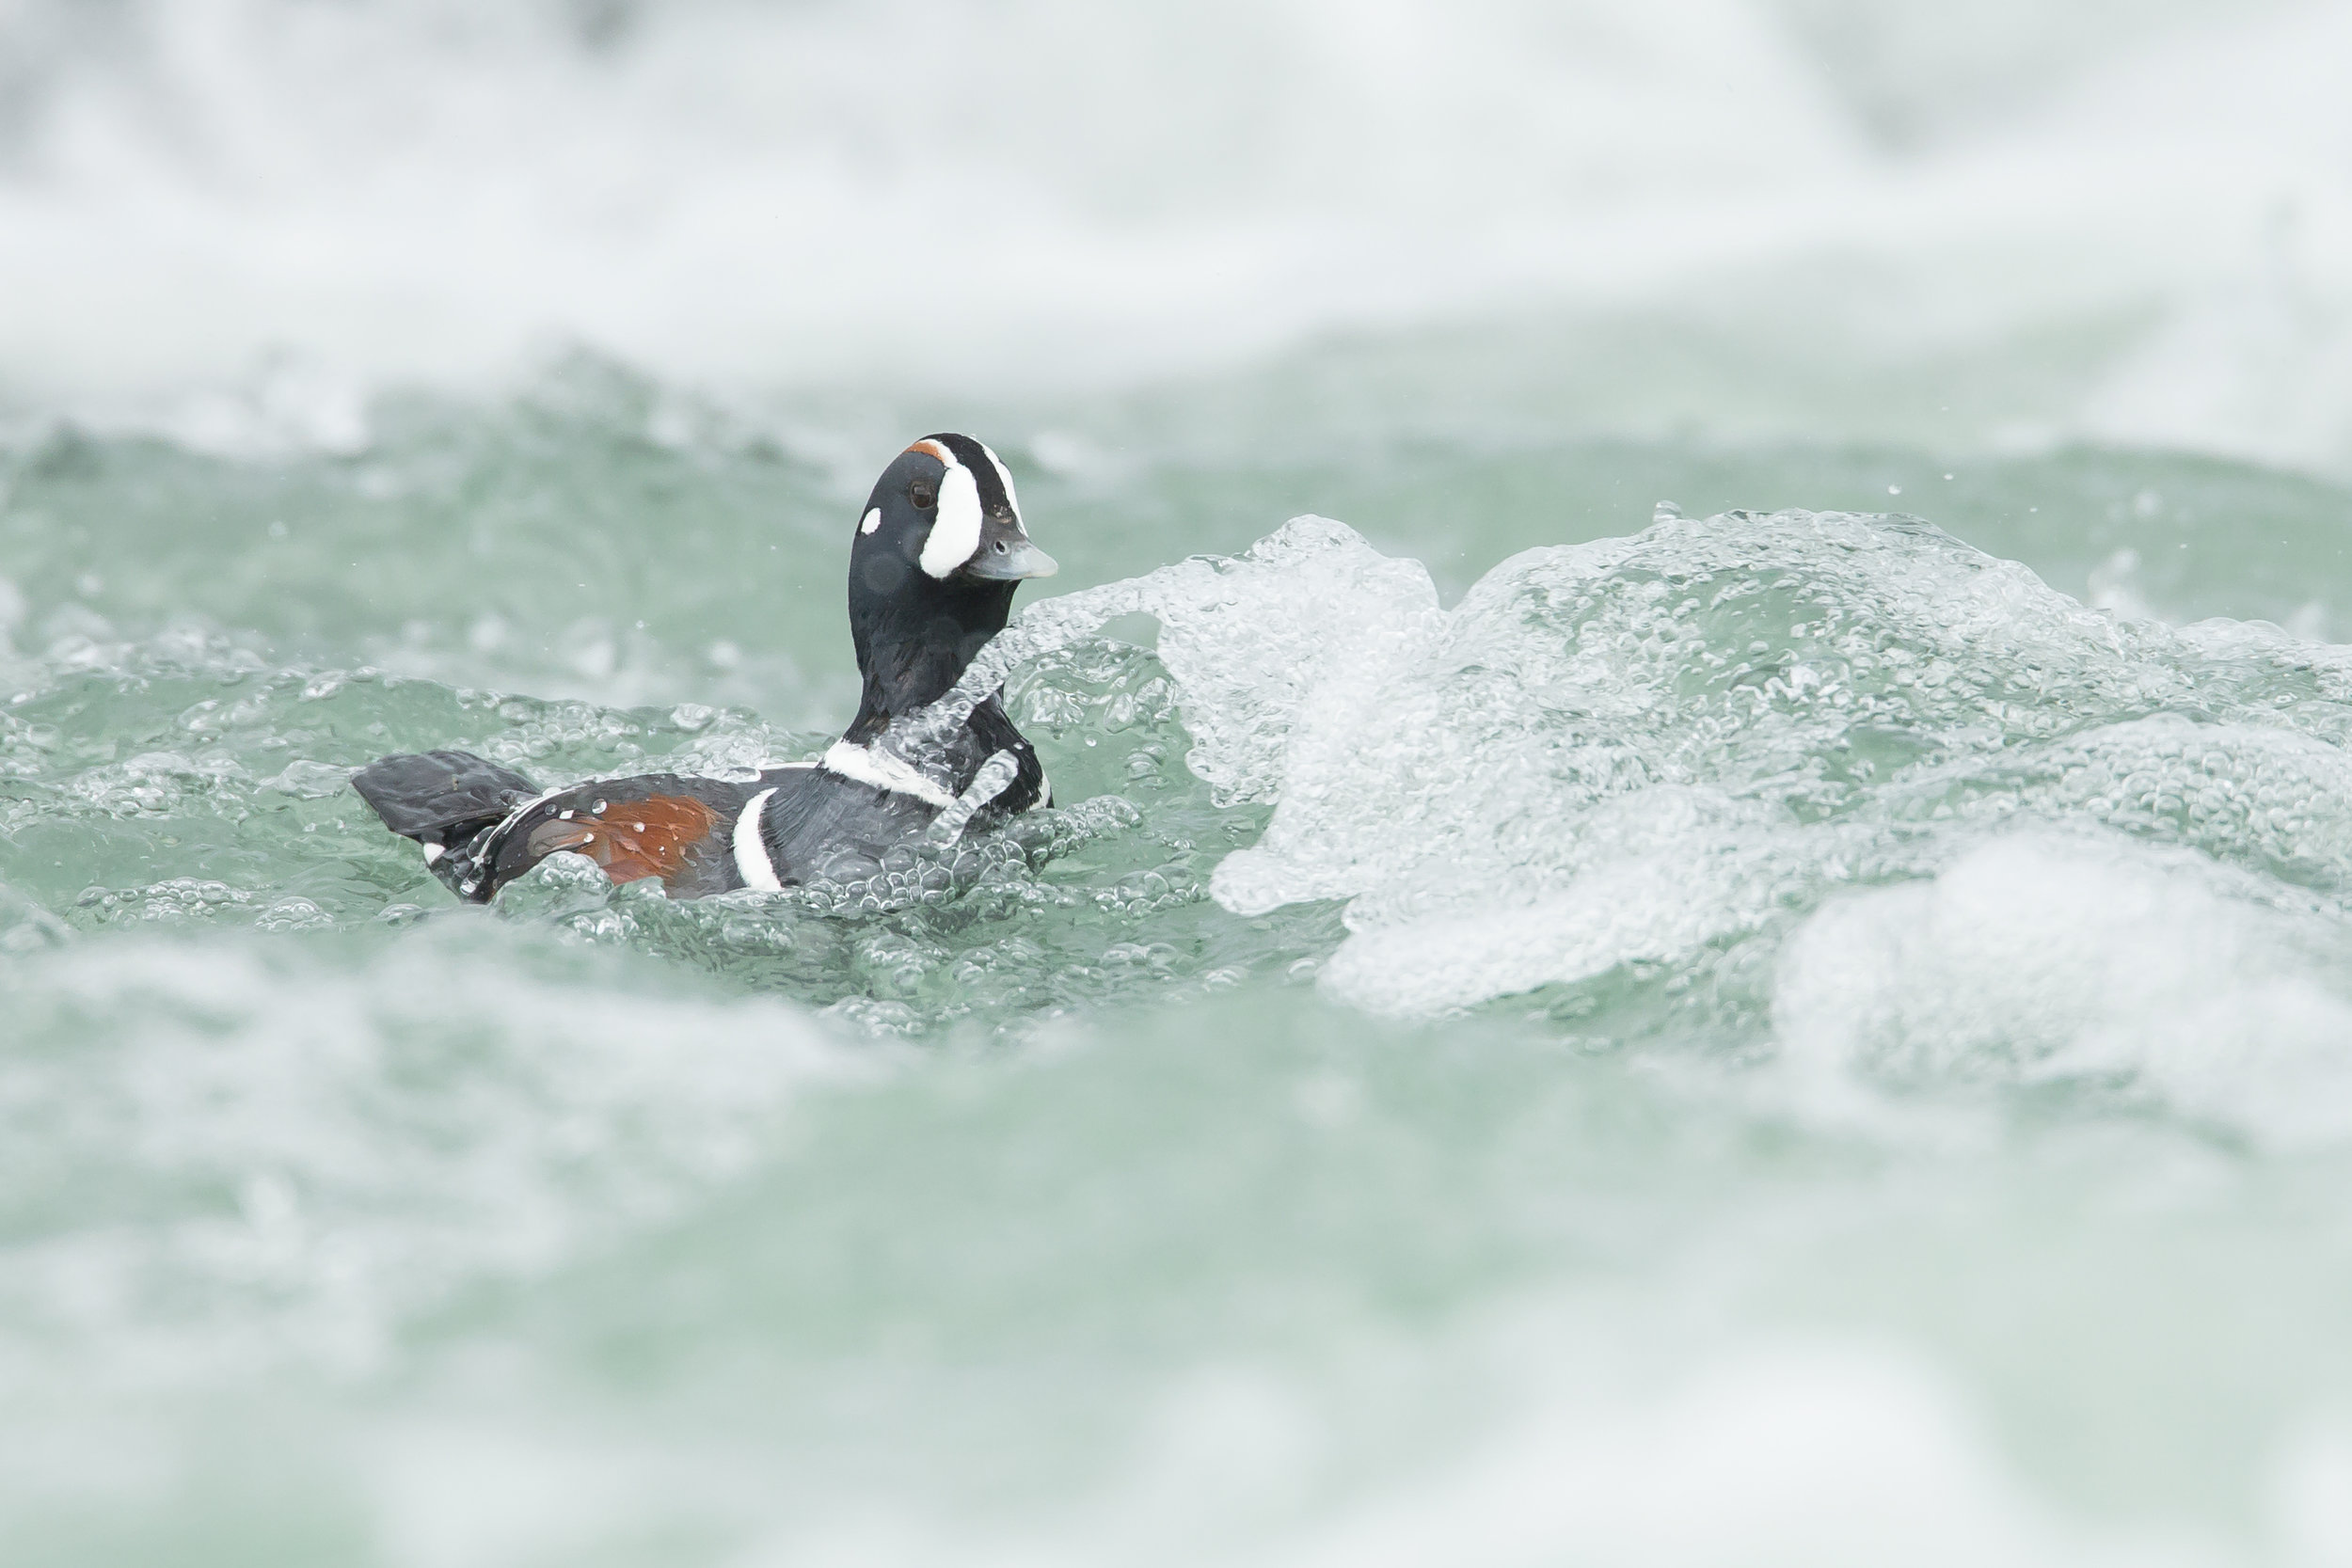 A drake Harlequin duck shoots the rapids of the River Laxa in northeast Iceland - there are few finer sights in nature!